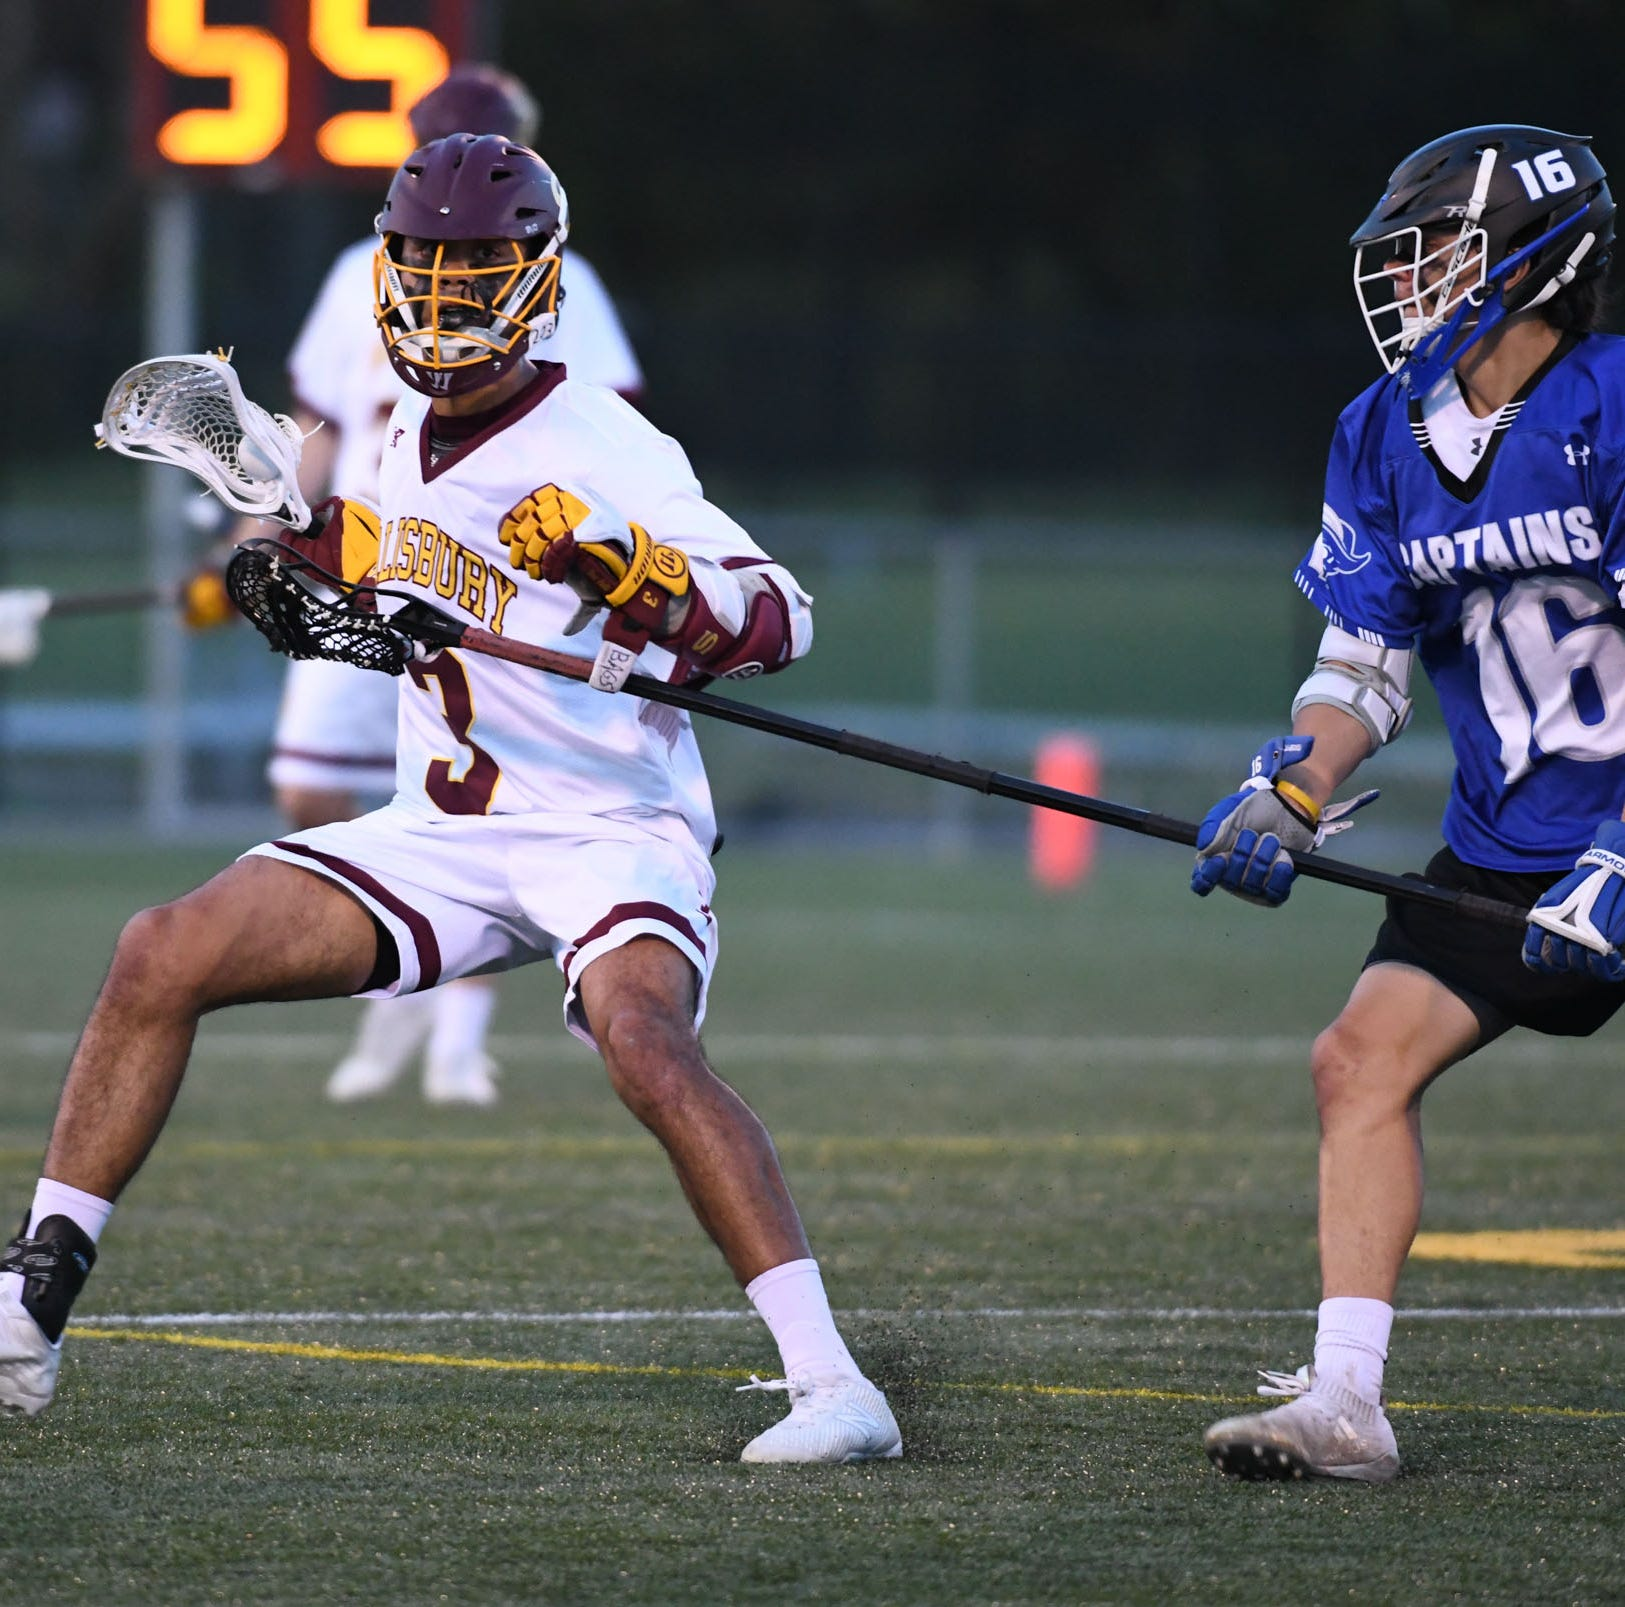 Salisbury men's lacrosse wins double overtime thriller over Washington